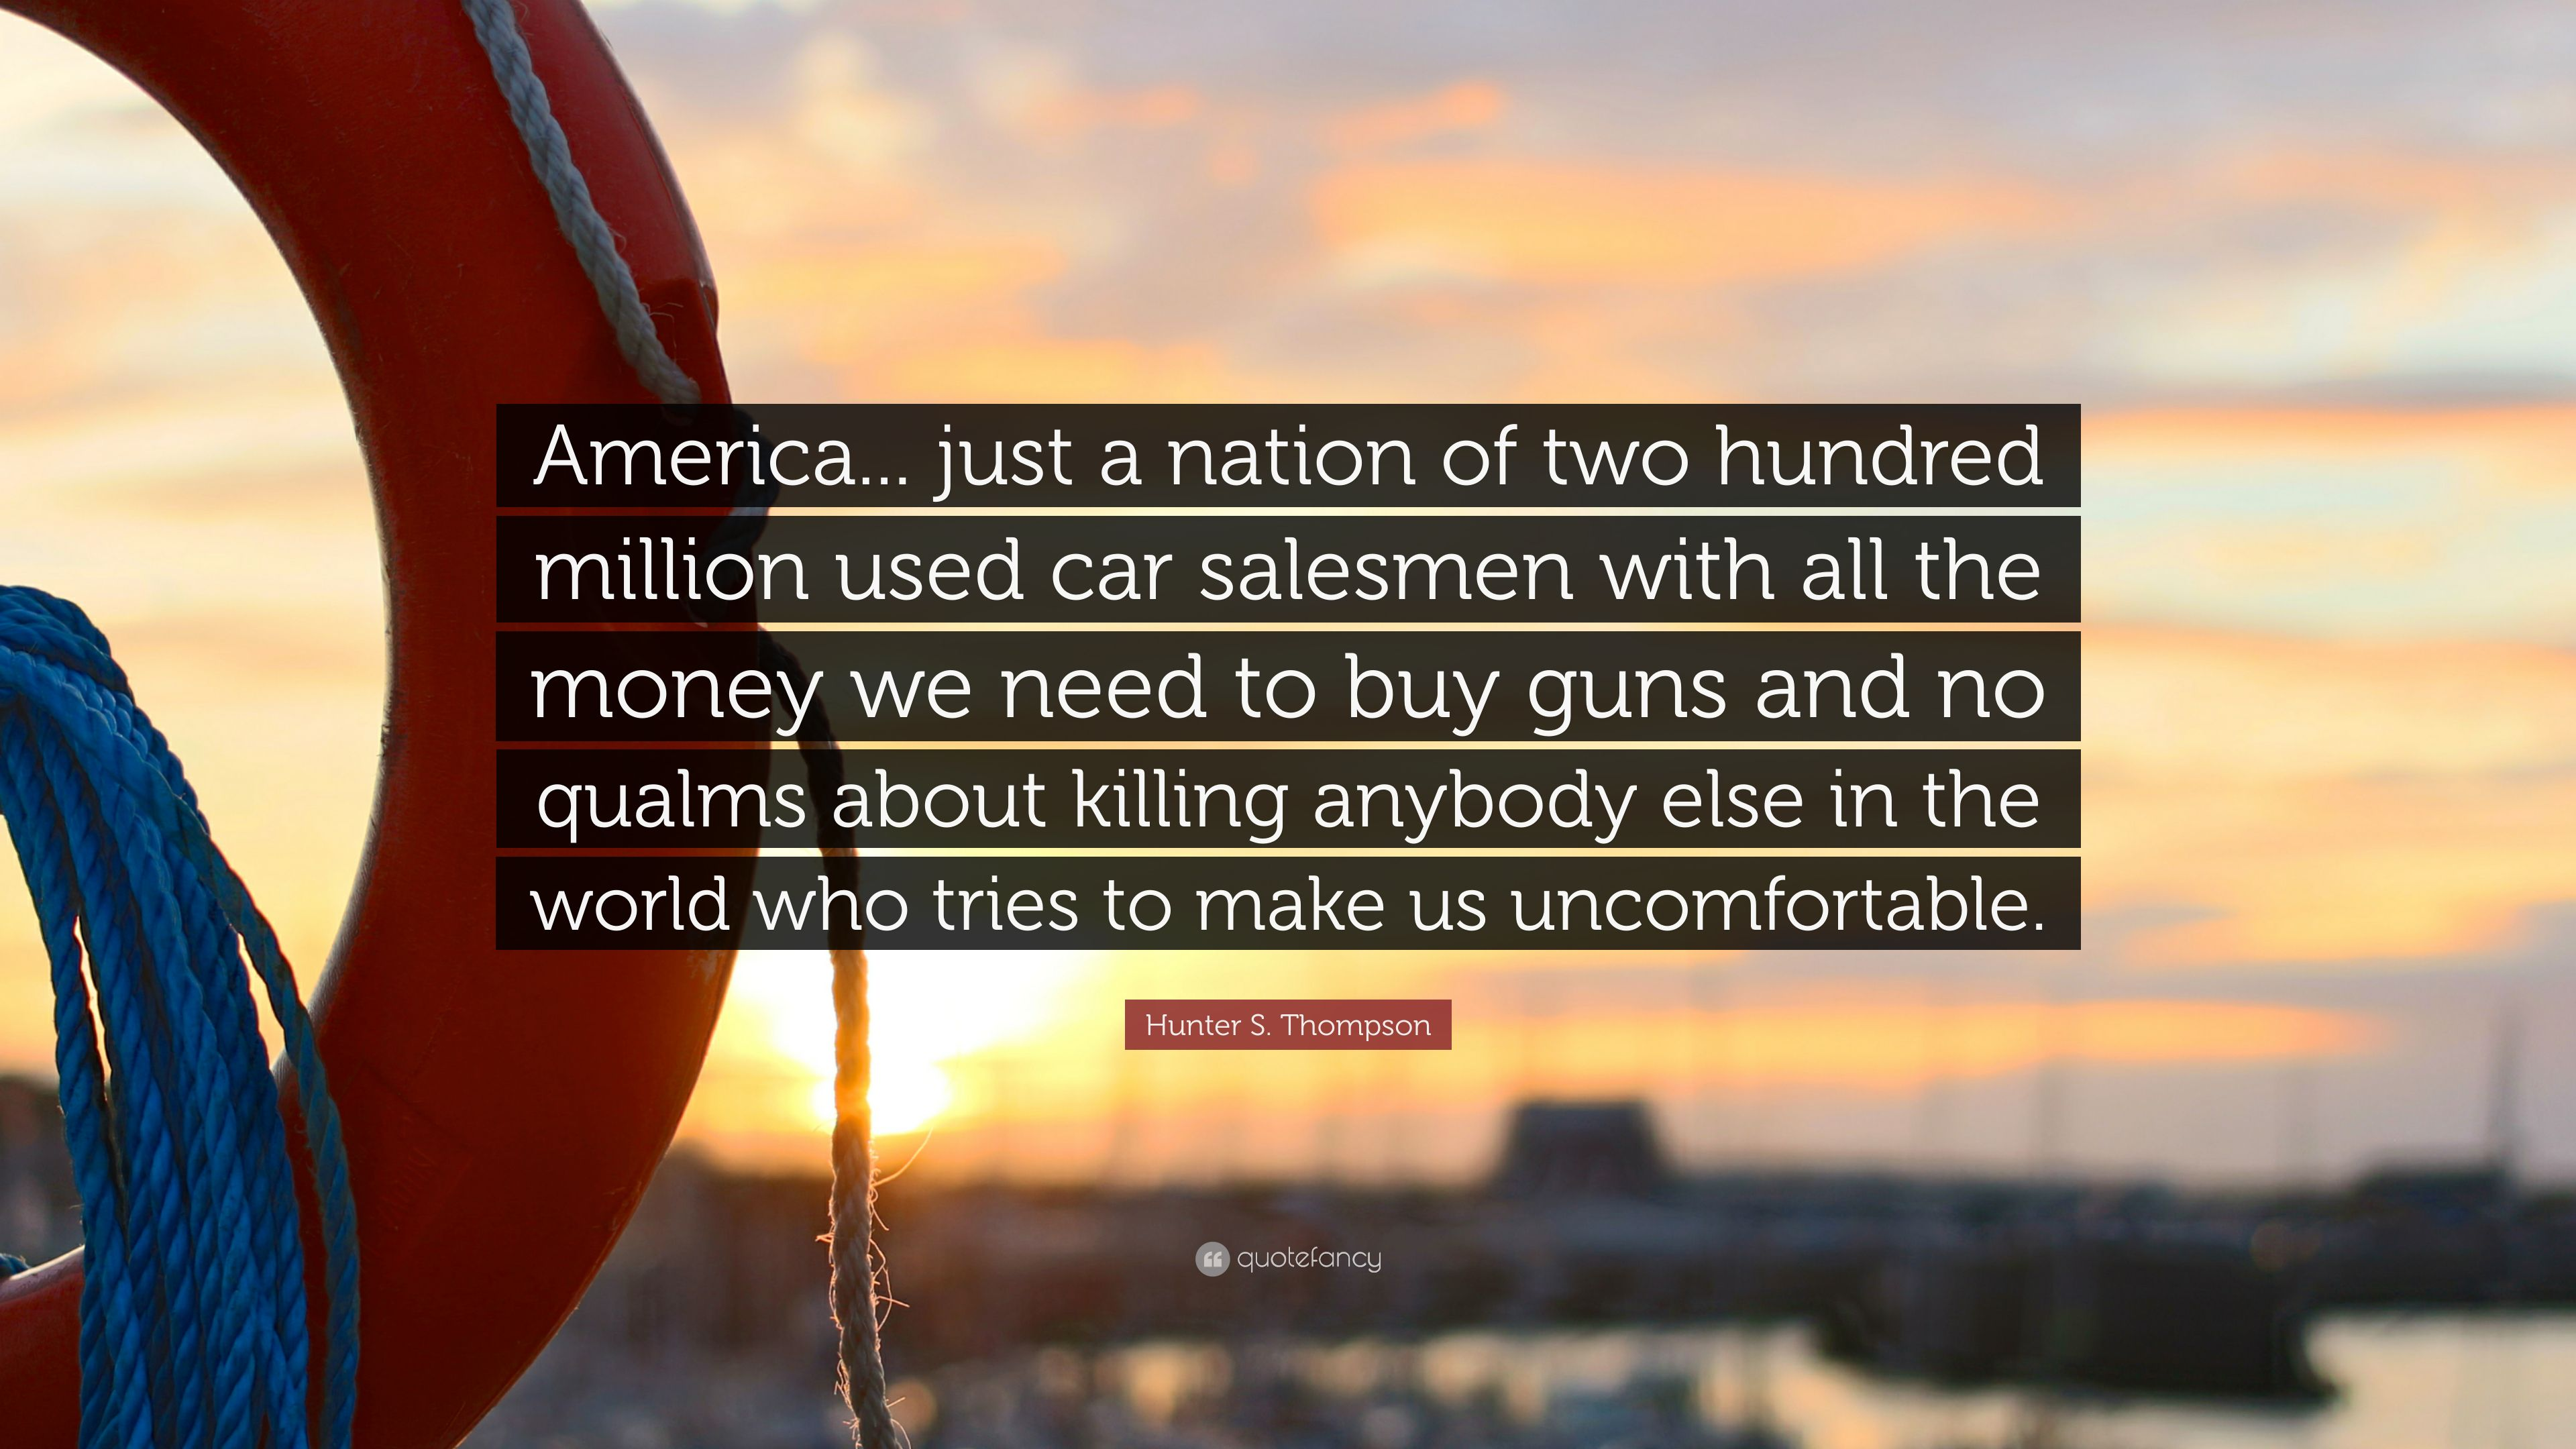 hunter s thompson quote america just a nation of two hundred million used car salesmen. Black Bedroom Furniture Sets. Home Design Ideas